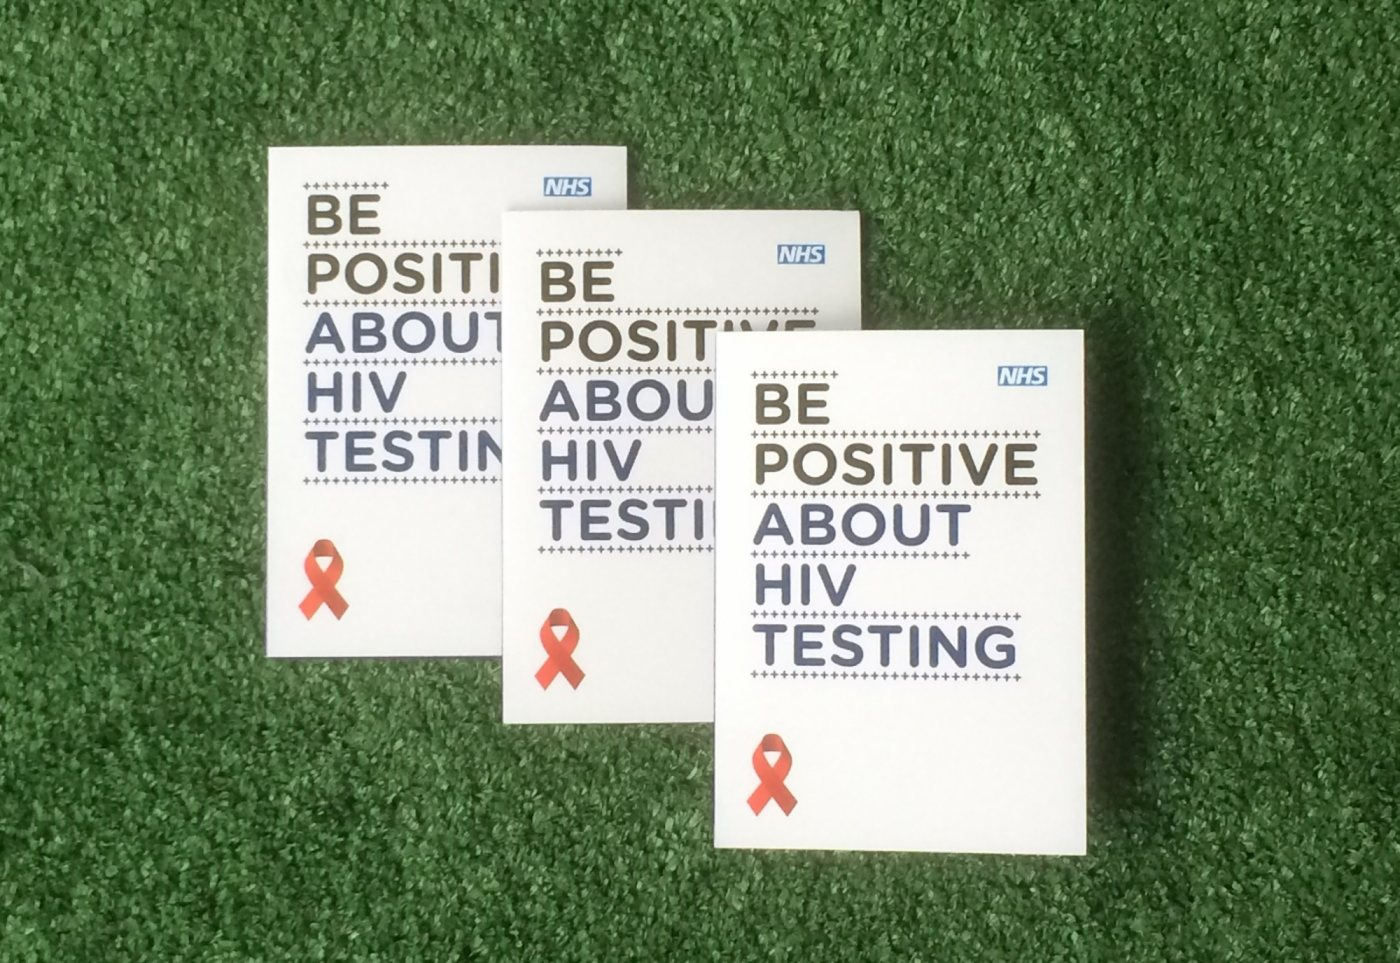 Bepositiveabout HIV